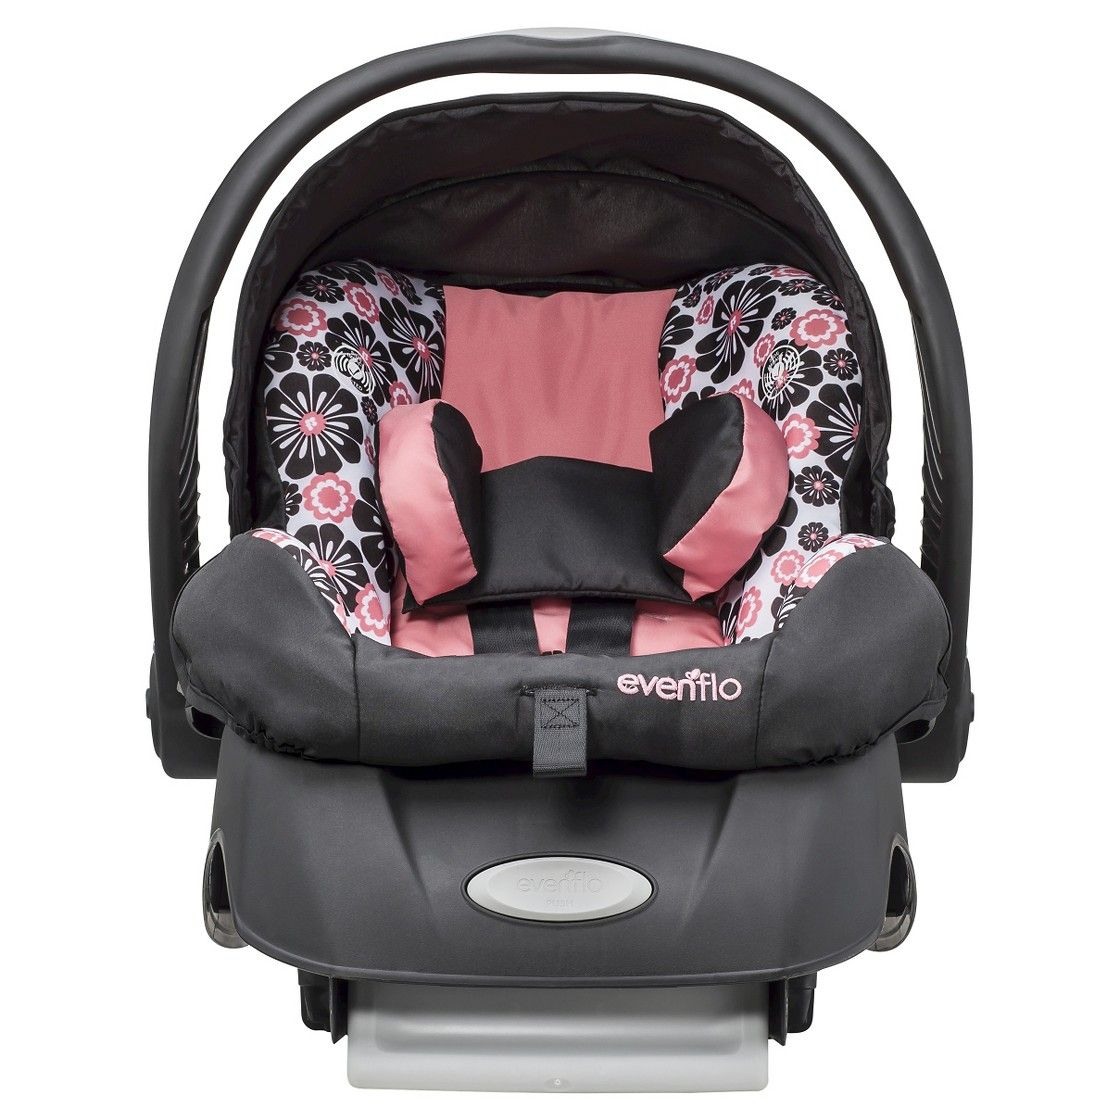 Evenflo Embrace LX Infant Car Seat Penelope Evenflo